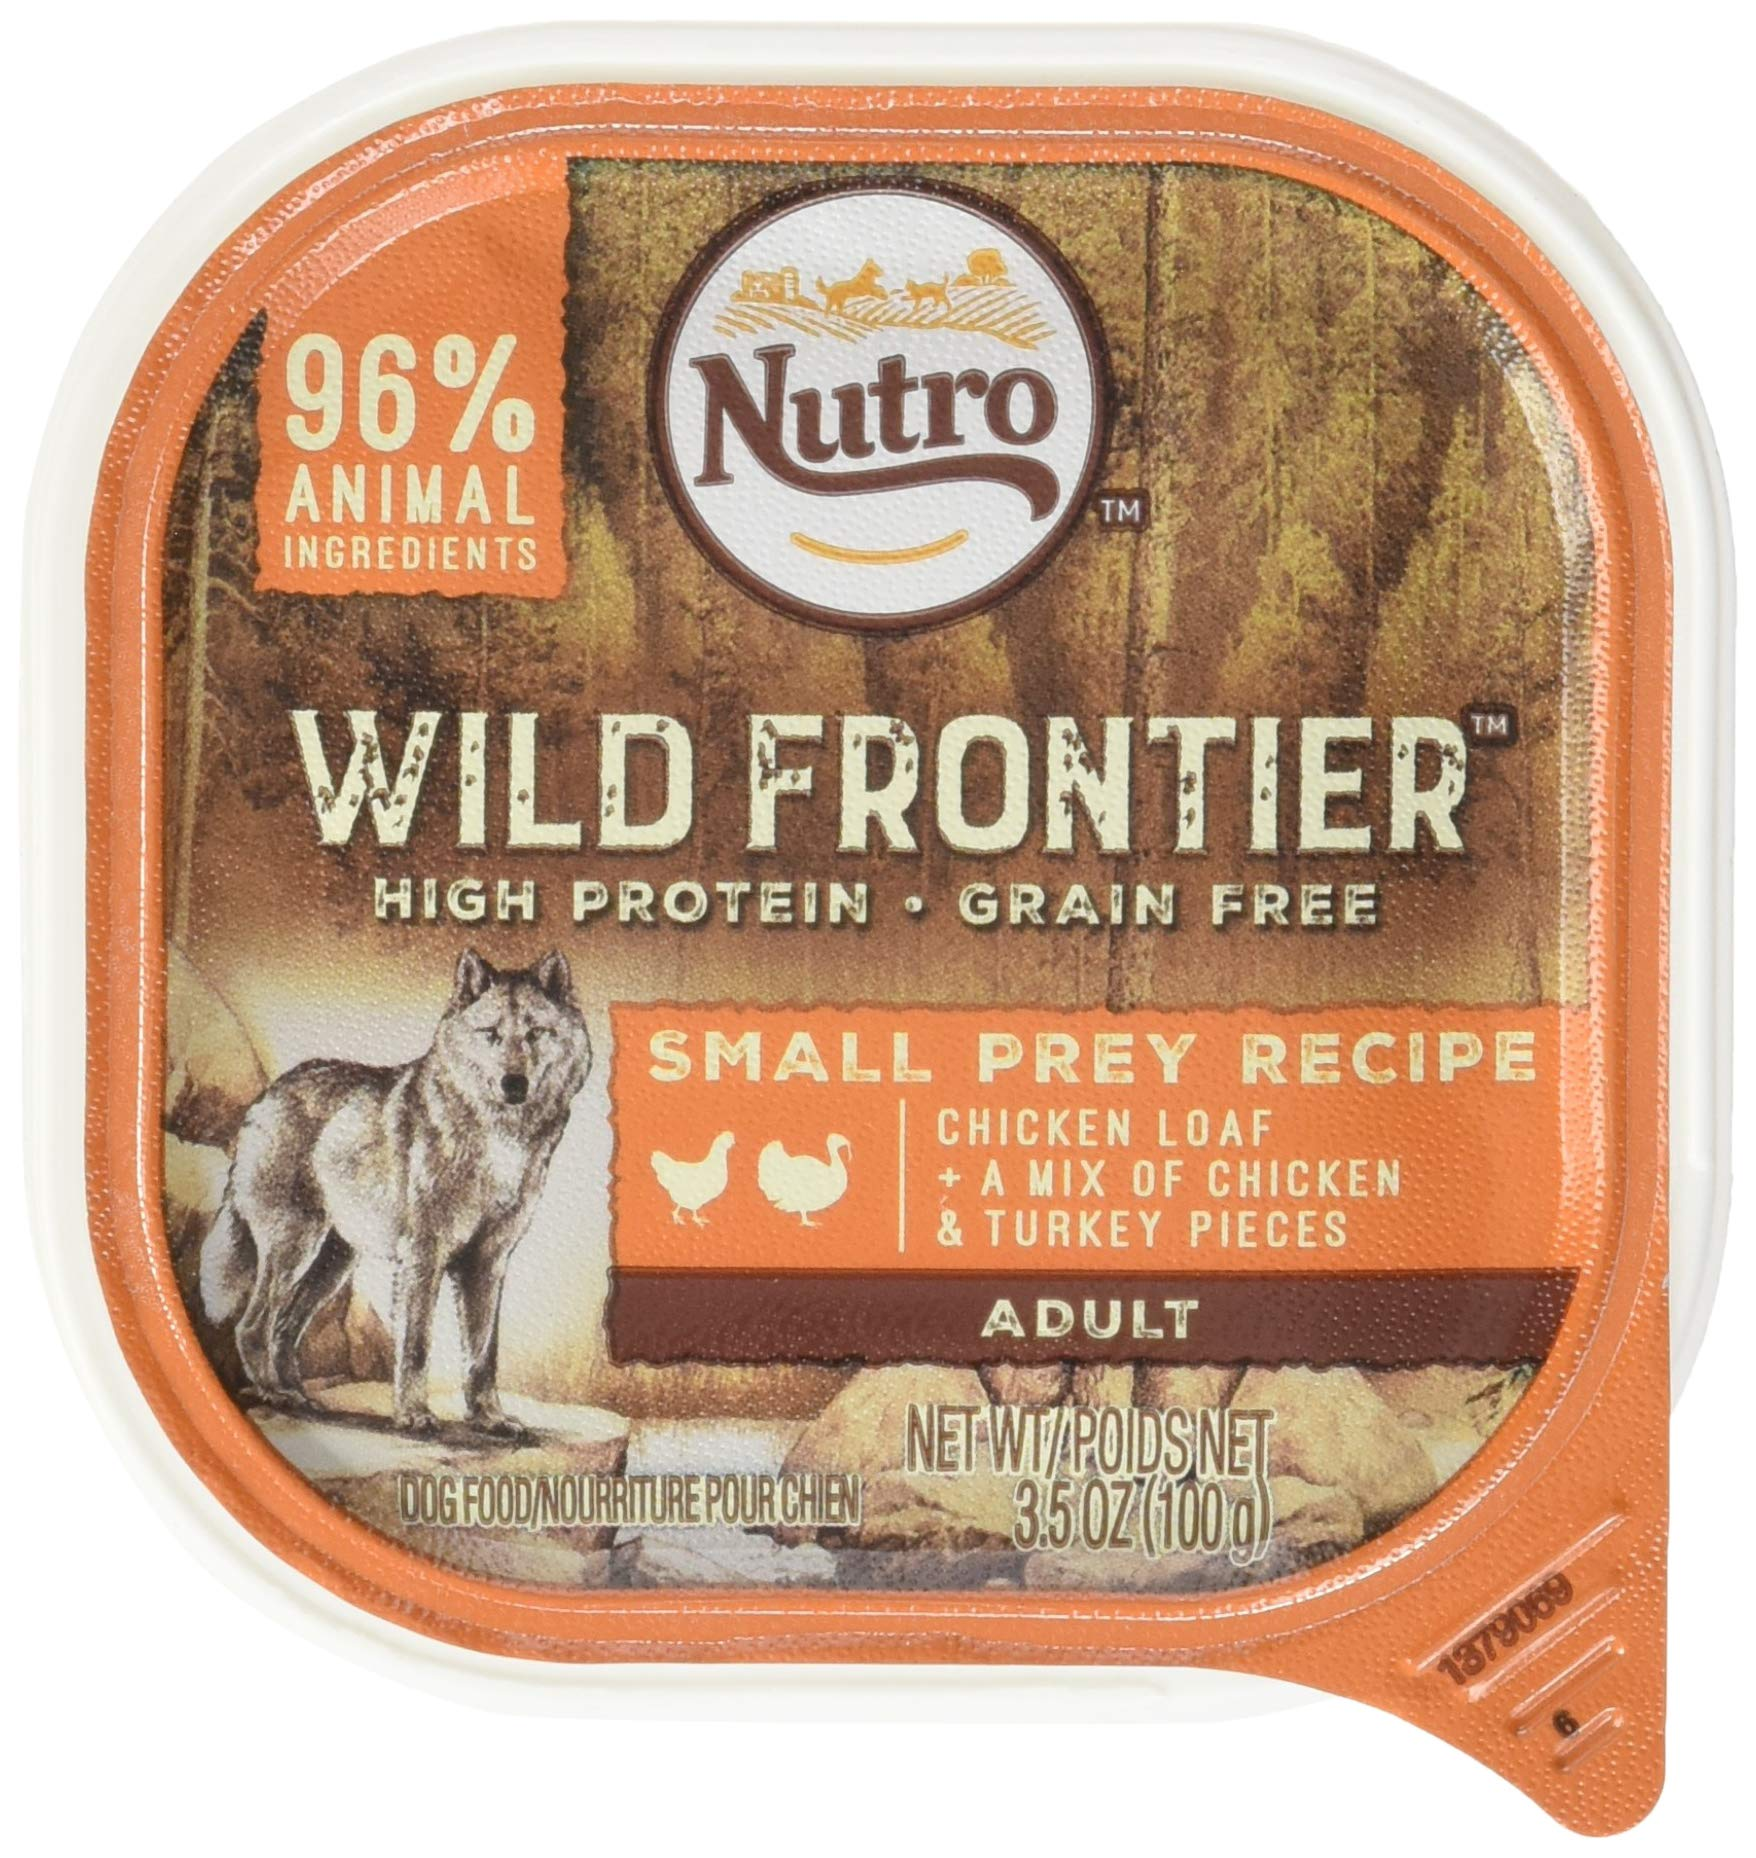 DISCONTINUED: NUTRO Wild Frontier Small Prey Recipe Chicken Loaf With a Mix of Chicken and Turkey Pieces Dog Food Trays 3.5 Ounces (Pack of 24) by Wild Frontier Wet Dog